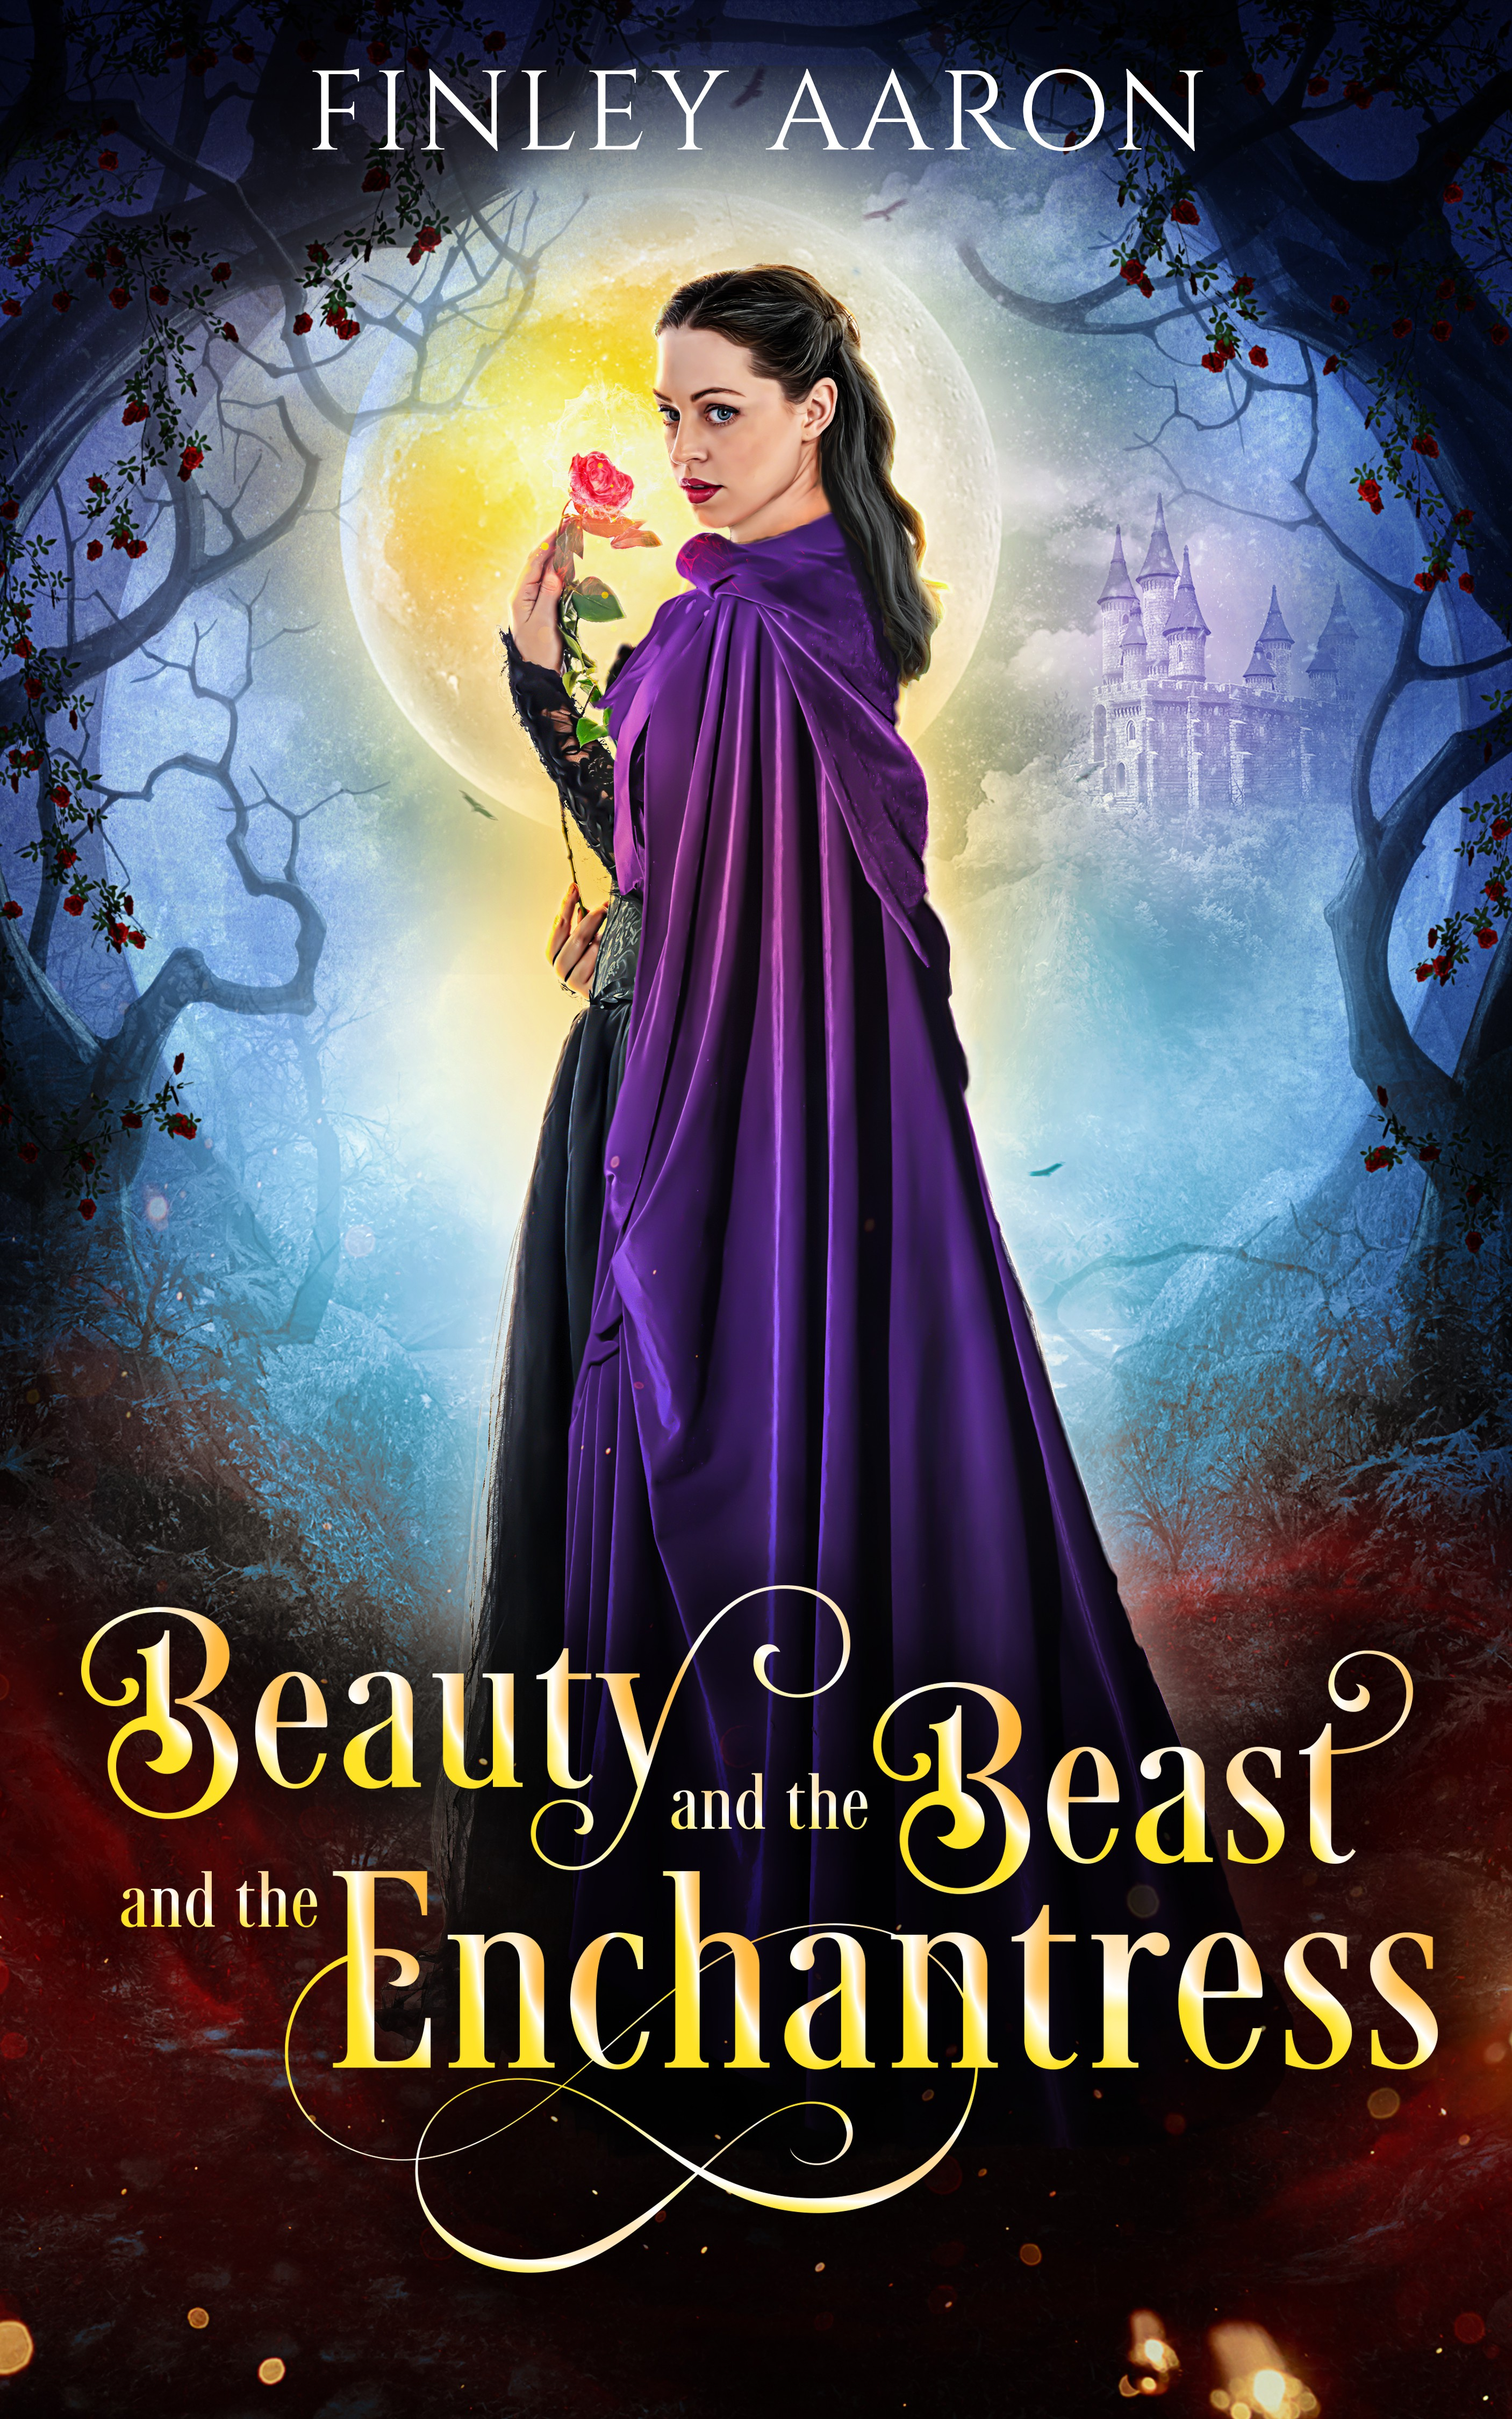 young adult fantasy book cover for Beauty and the Beast and the Enchantress